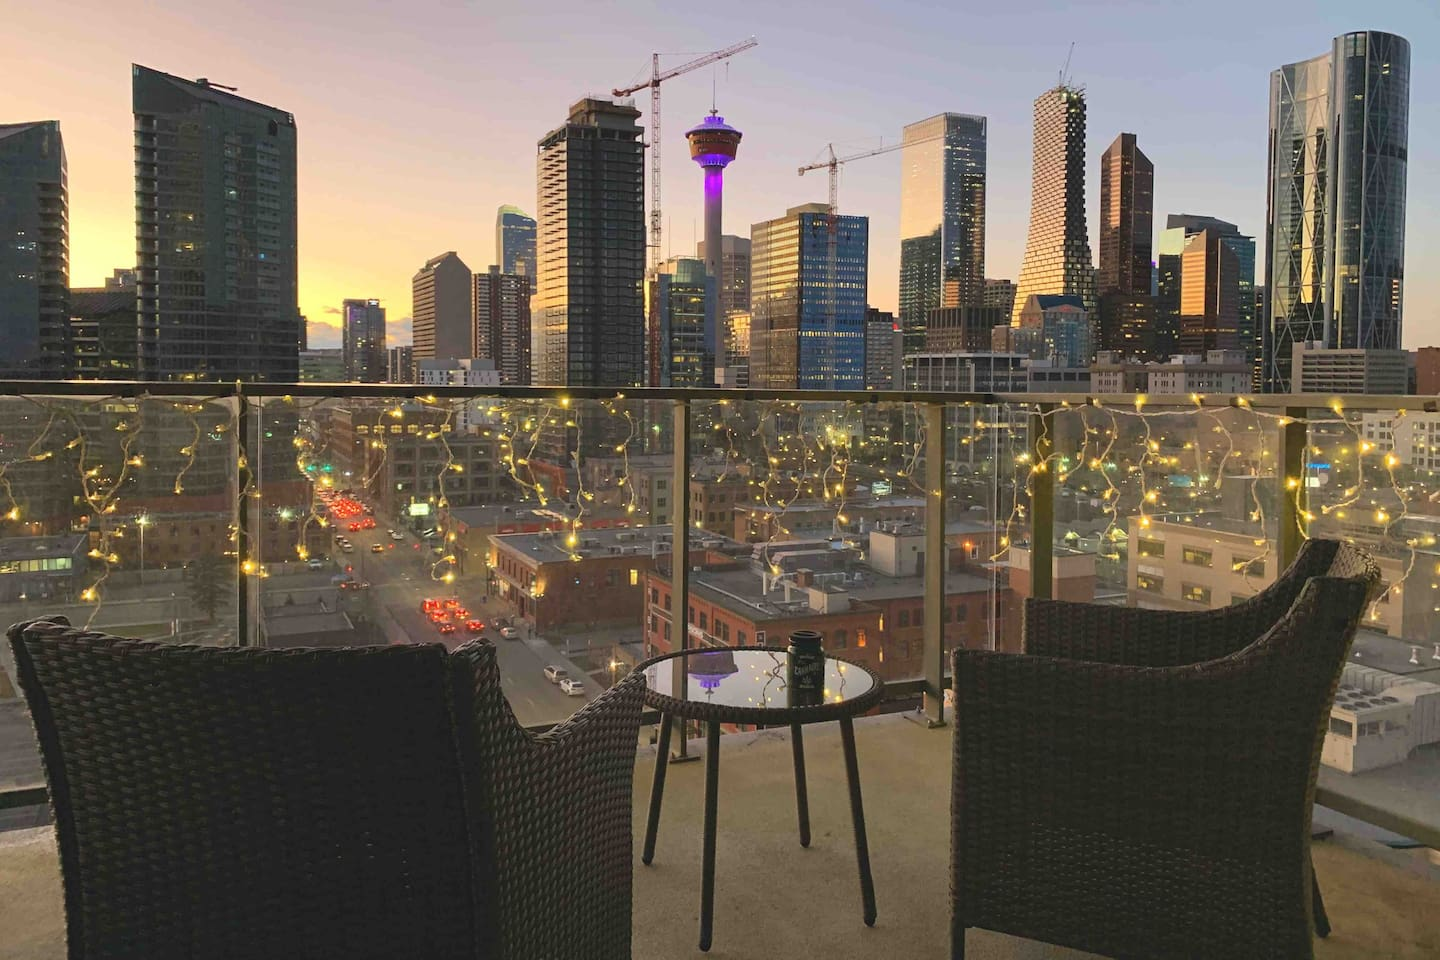 Take in the breathtaking views from this 12th floor balcony attached to this beautiful downtown condo. Overlooking the Calgary downtown skyline and the tower, there couldn't be a better way to enjoy your evening.